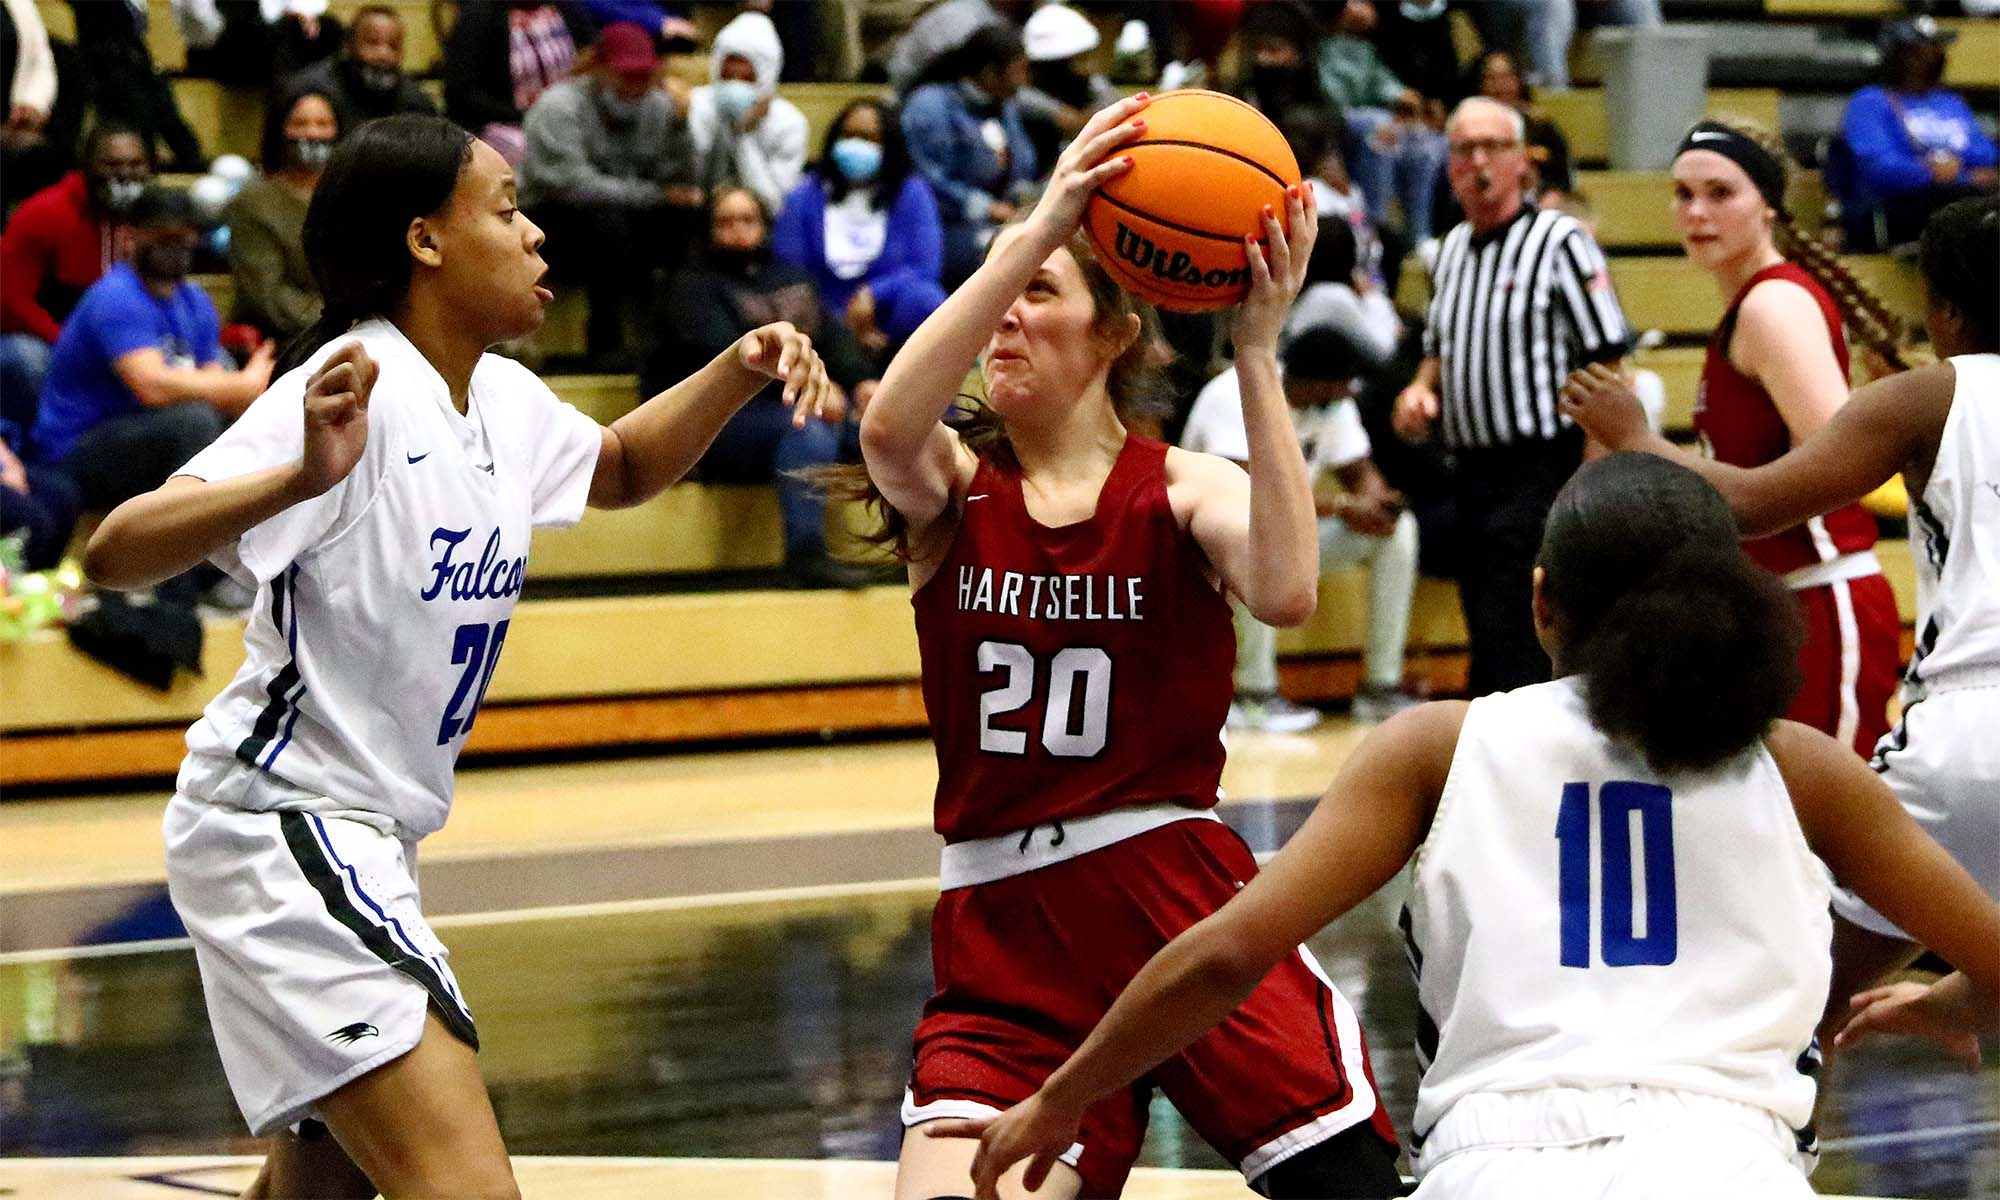 Lady Tigers use stout defense to pick up easy win over Florence